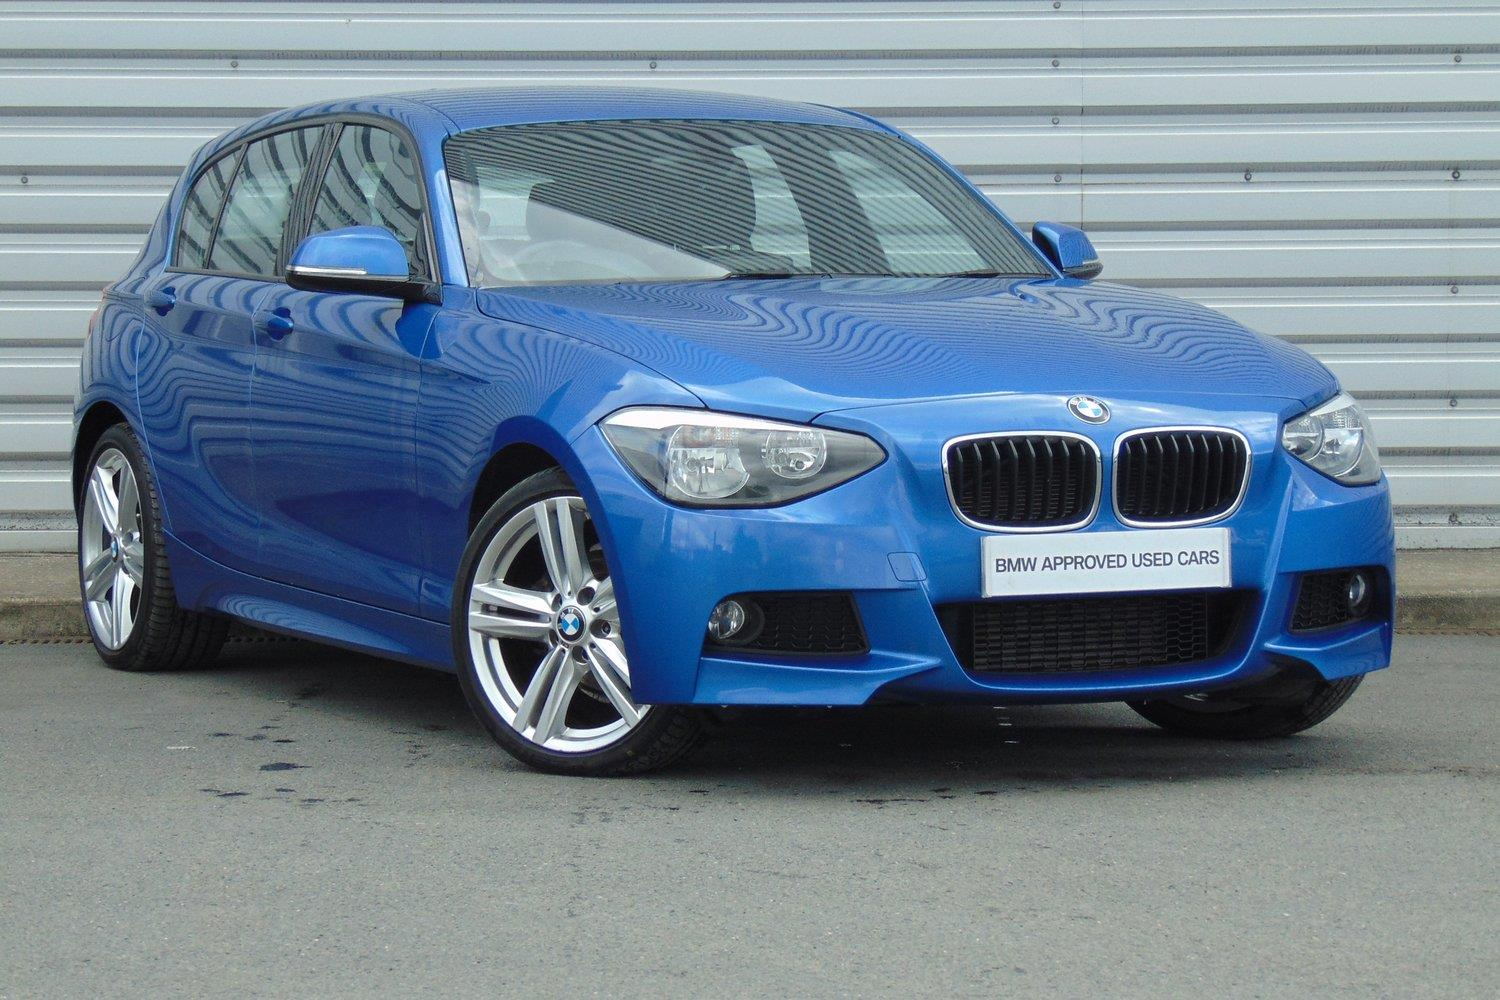 BMW 1 Series 5-door Sports Hatch YG63UBP - Image 10